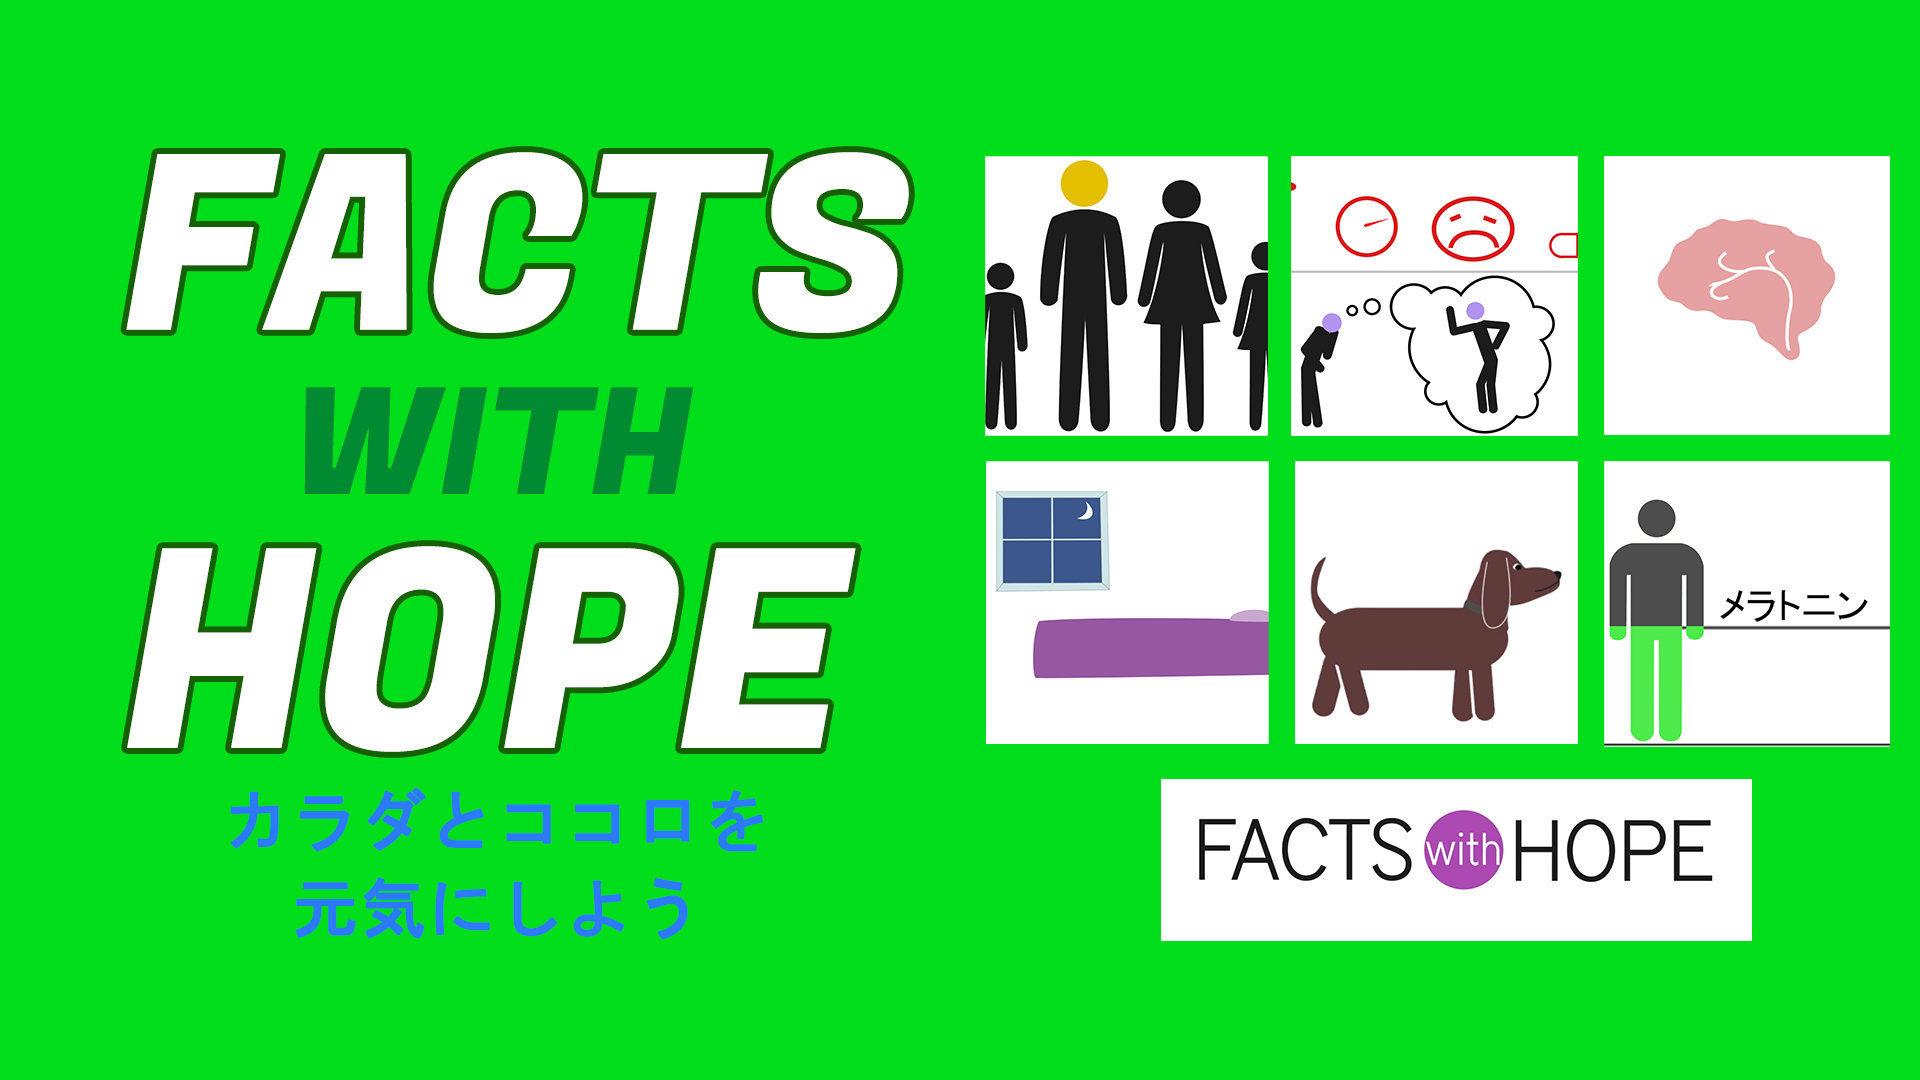 Facts with Hope